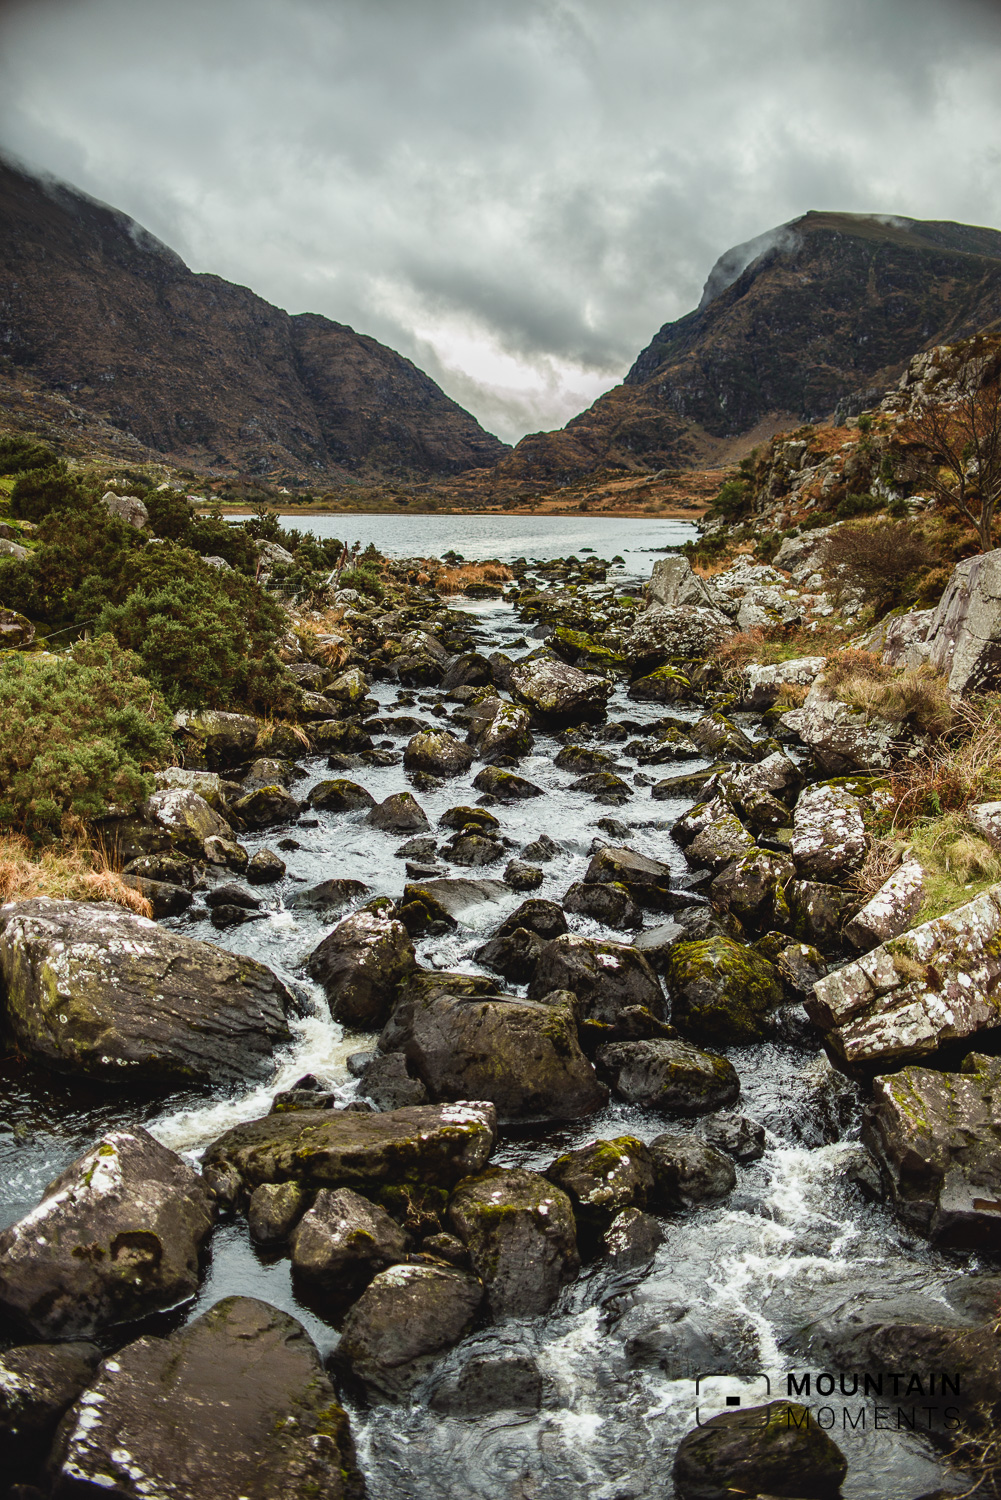 common mistakes in landscape photography, mistakes landscape photography, landscape photography, photography ireland, photographie irland, landschaftsfotografie irland, gap of dunloe, dunloe gap, gap of dunloe photo